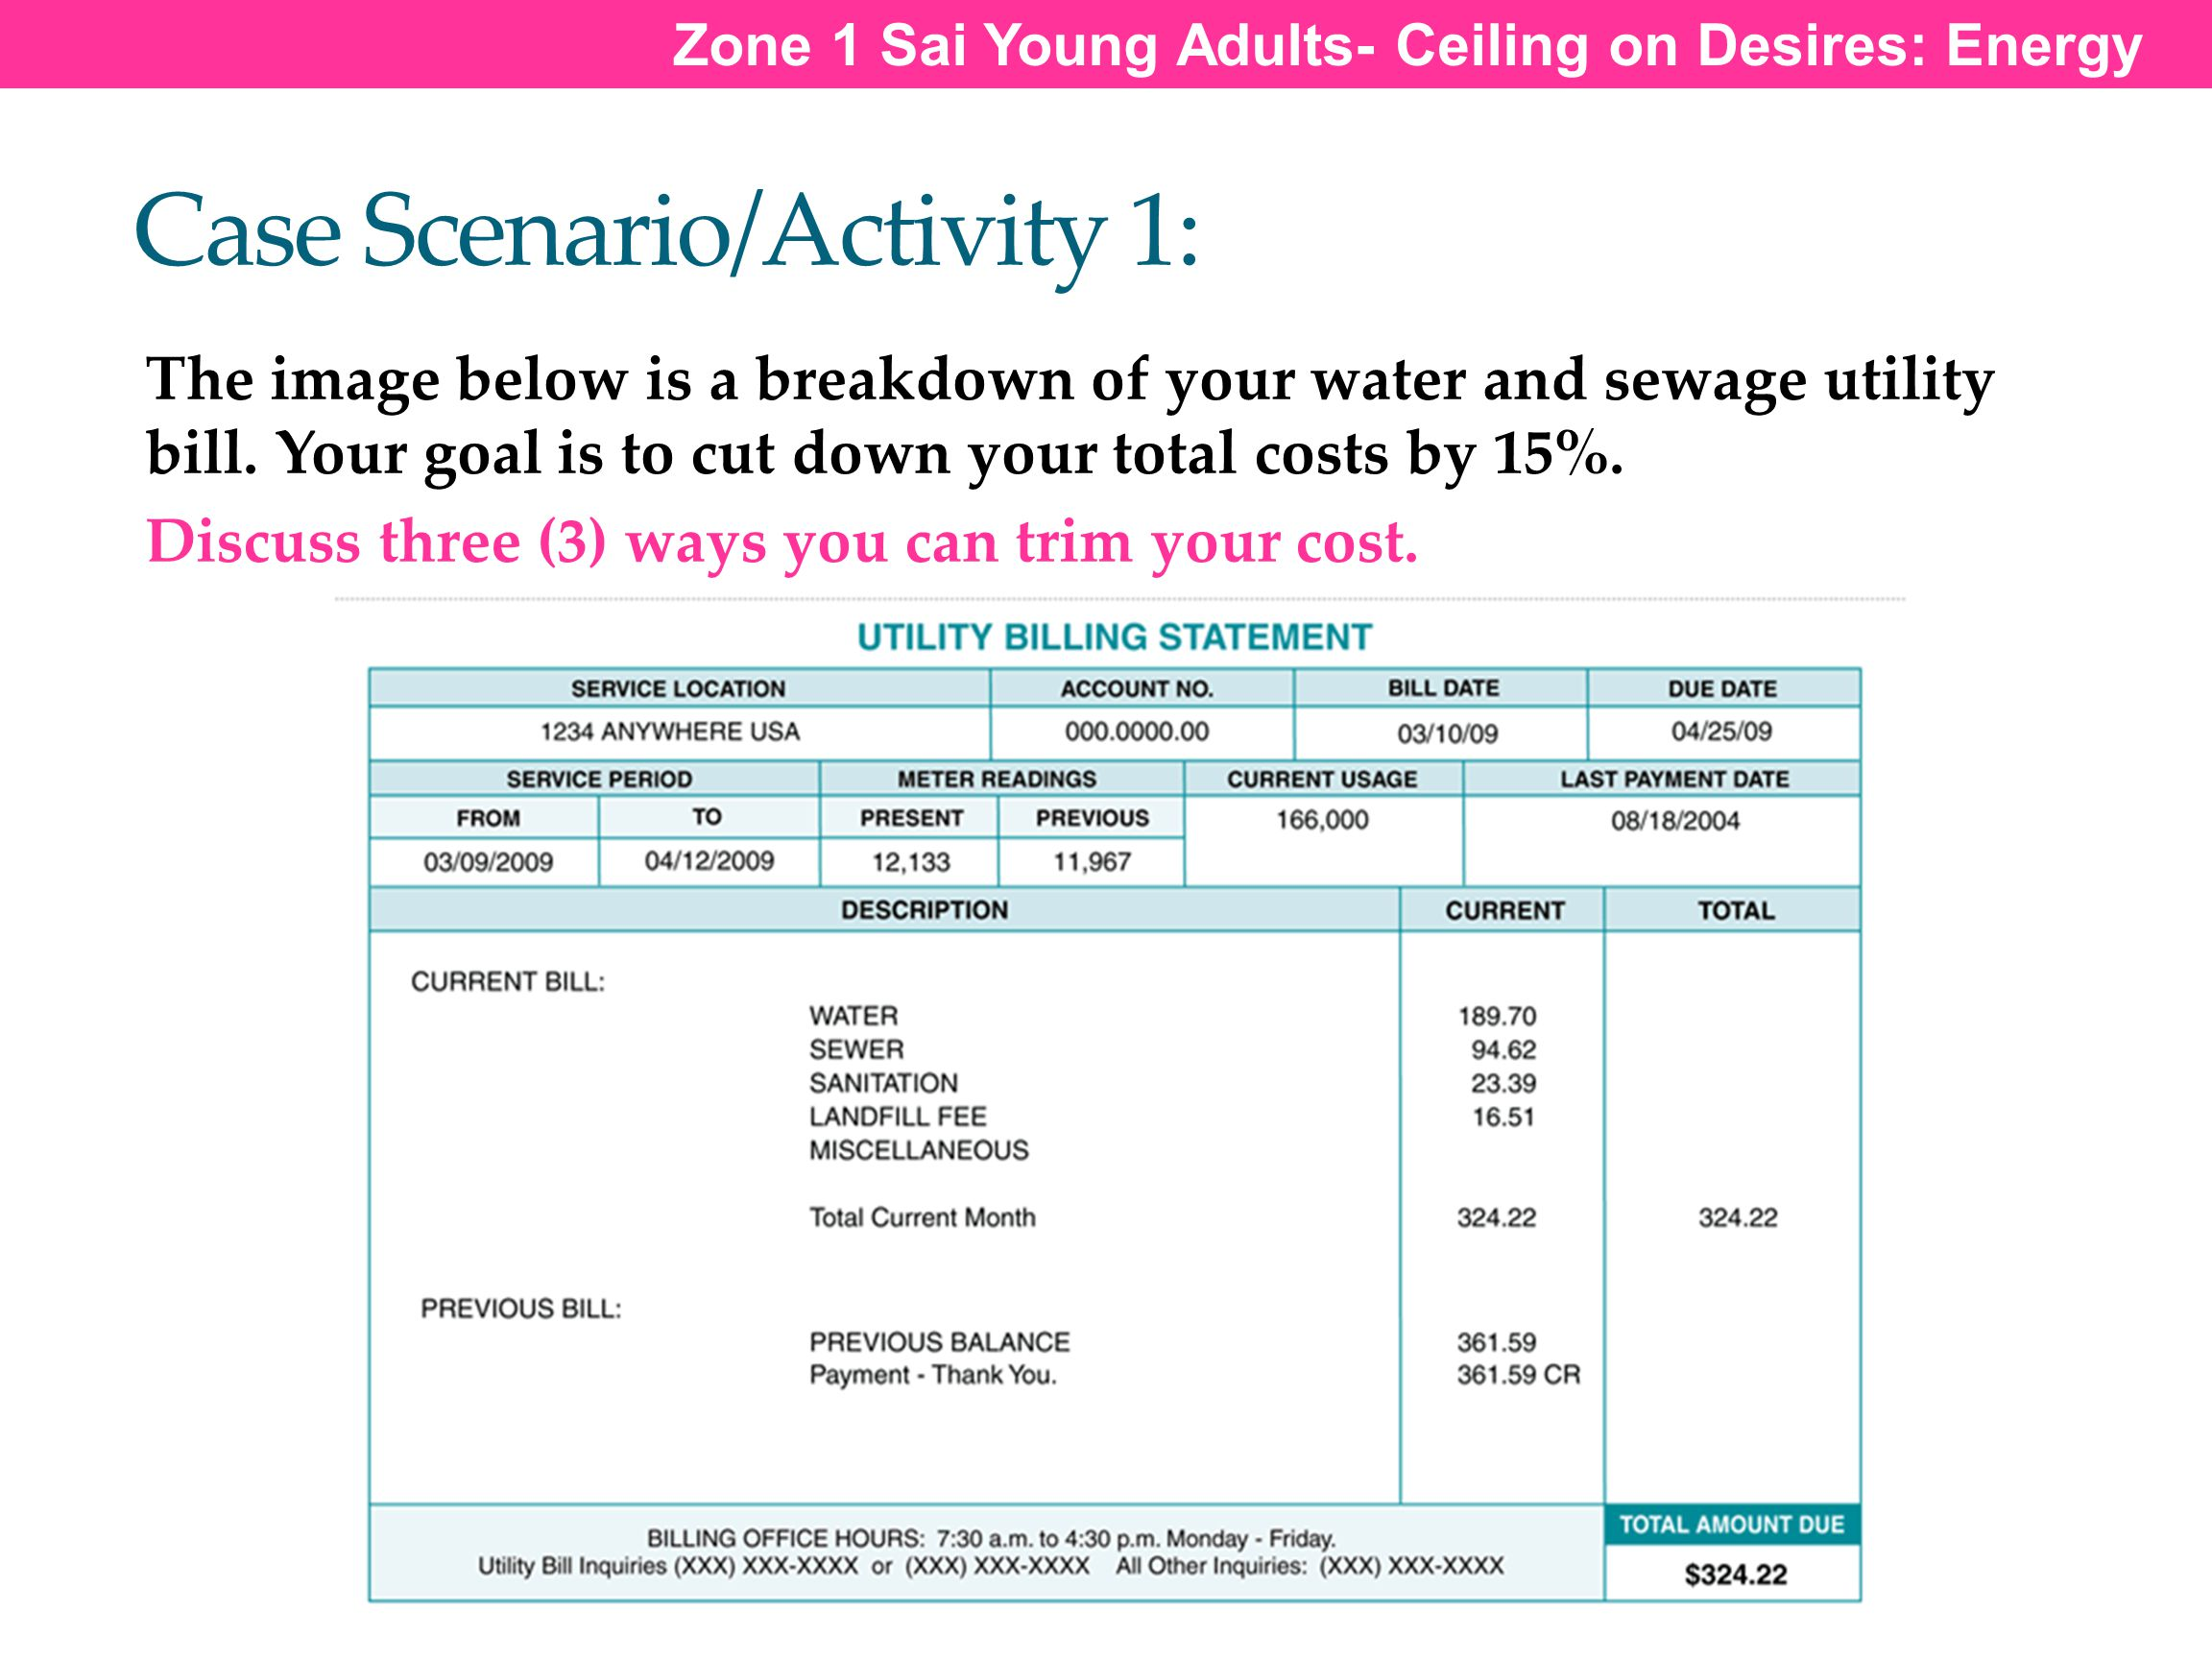 Case Scenario/Activity 1: The image below is a breakdown of your water and sewage utility bill. Your goal is to cut down your total costs by 15%. Disc